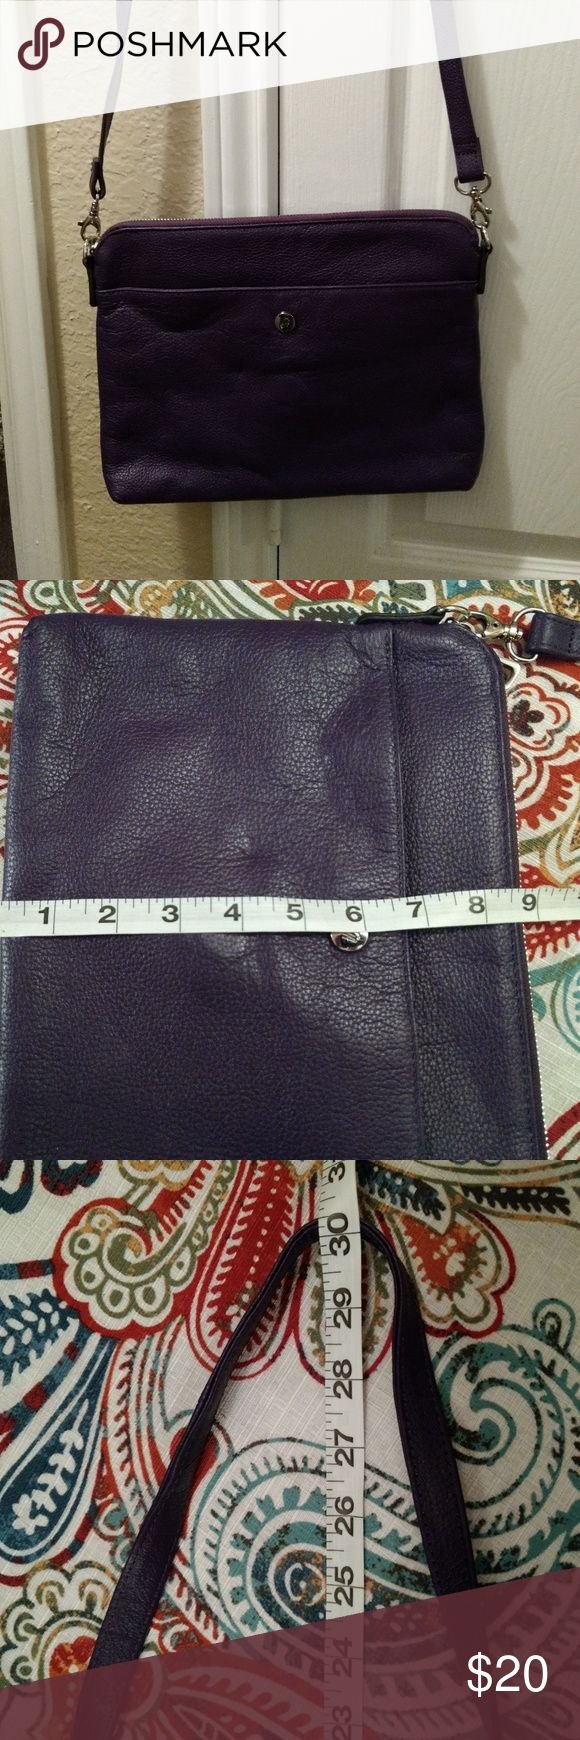 Grace Adele Tablet Tote / Crossbody - Purple/Grape Grace Adele Tablet Tote/Crossbody can hold a small tablet / ipad mini  (not for a large tablet). Measurements shown in pictures.  If used as a cross body, it will hold 3 cards in the interior(it is narrow) and 2 smaller pockets. 1 zippered pocket on the back exterior and 1 open pocket in the front.  The strap is not adjustable. The pic with the flower is purse jewelry that is available in a separate listing in my closet.  The flower is not…